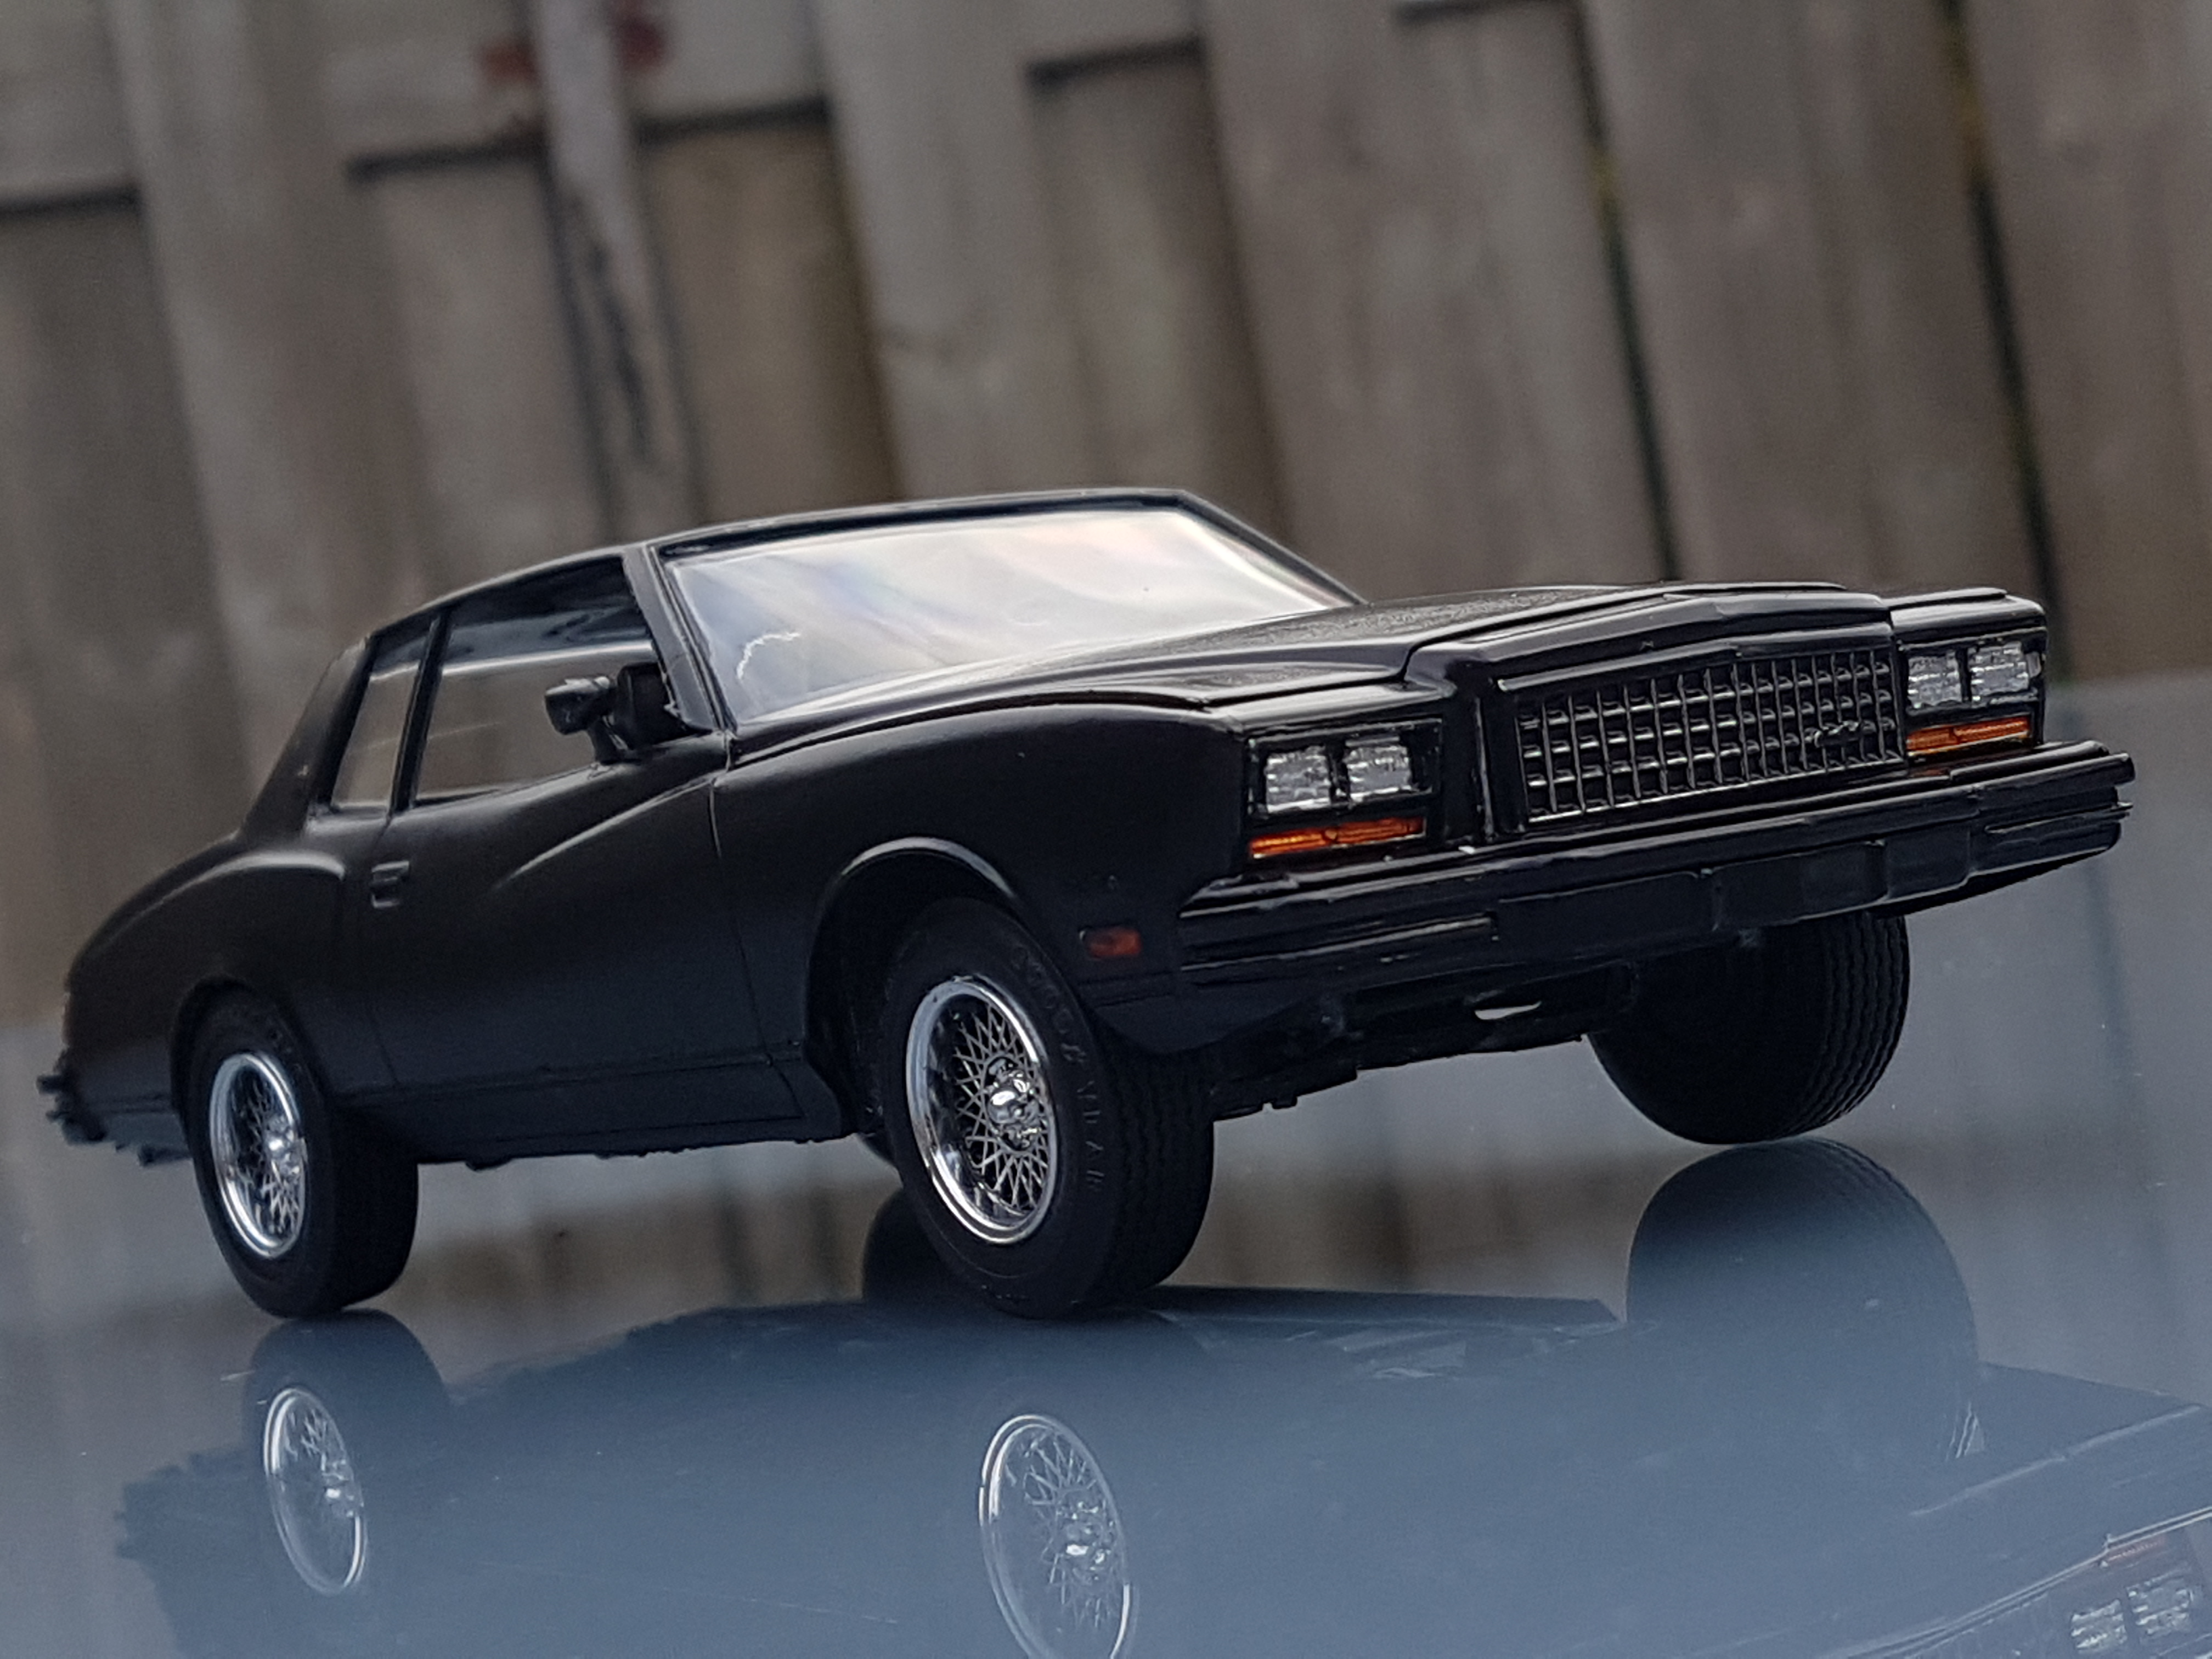 Tire For Less >> 1980 Chevrolet Monte Carlo – MPC | Rays Kits